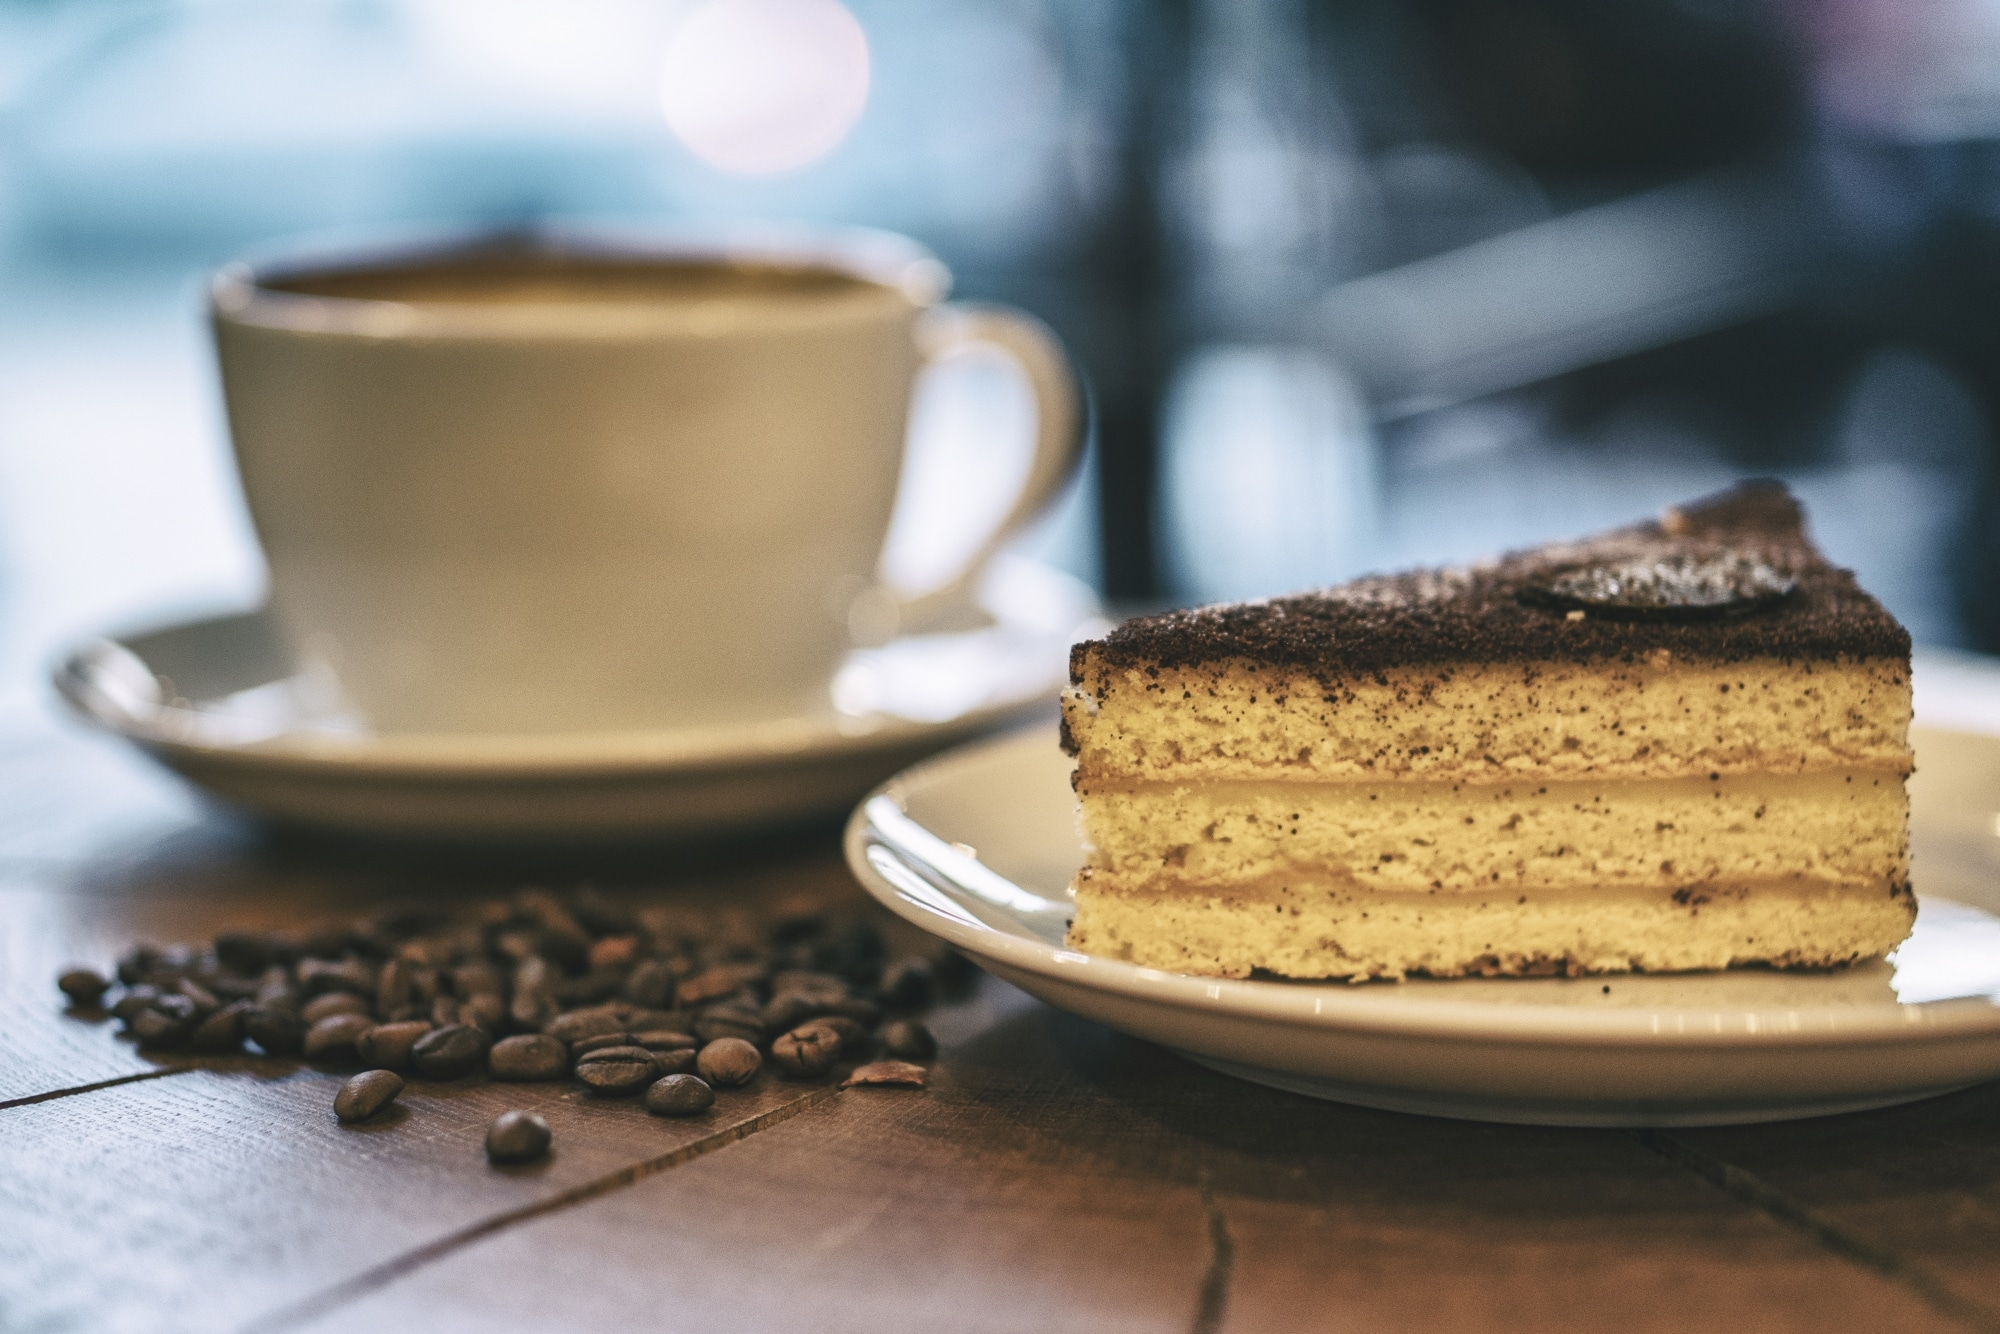 One cup of espresso and piece of cake on a wooden board